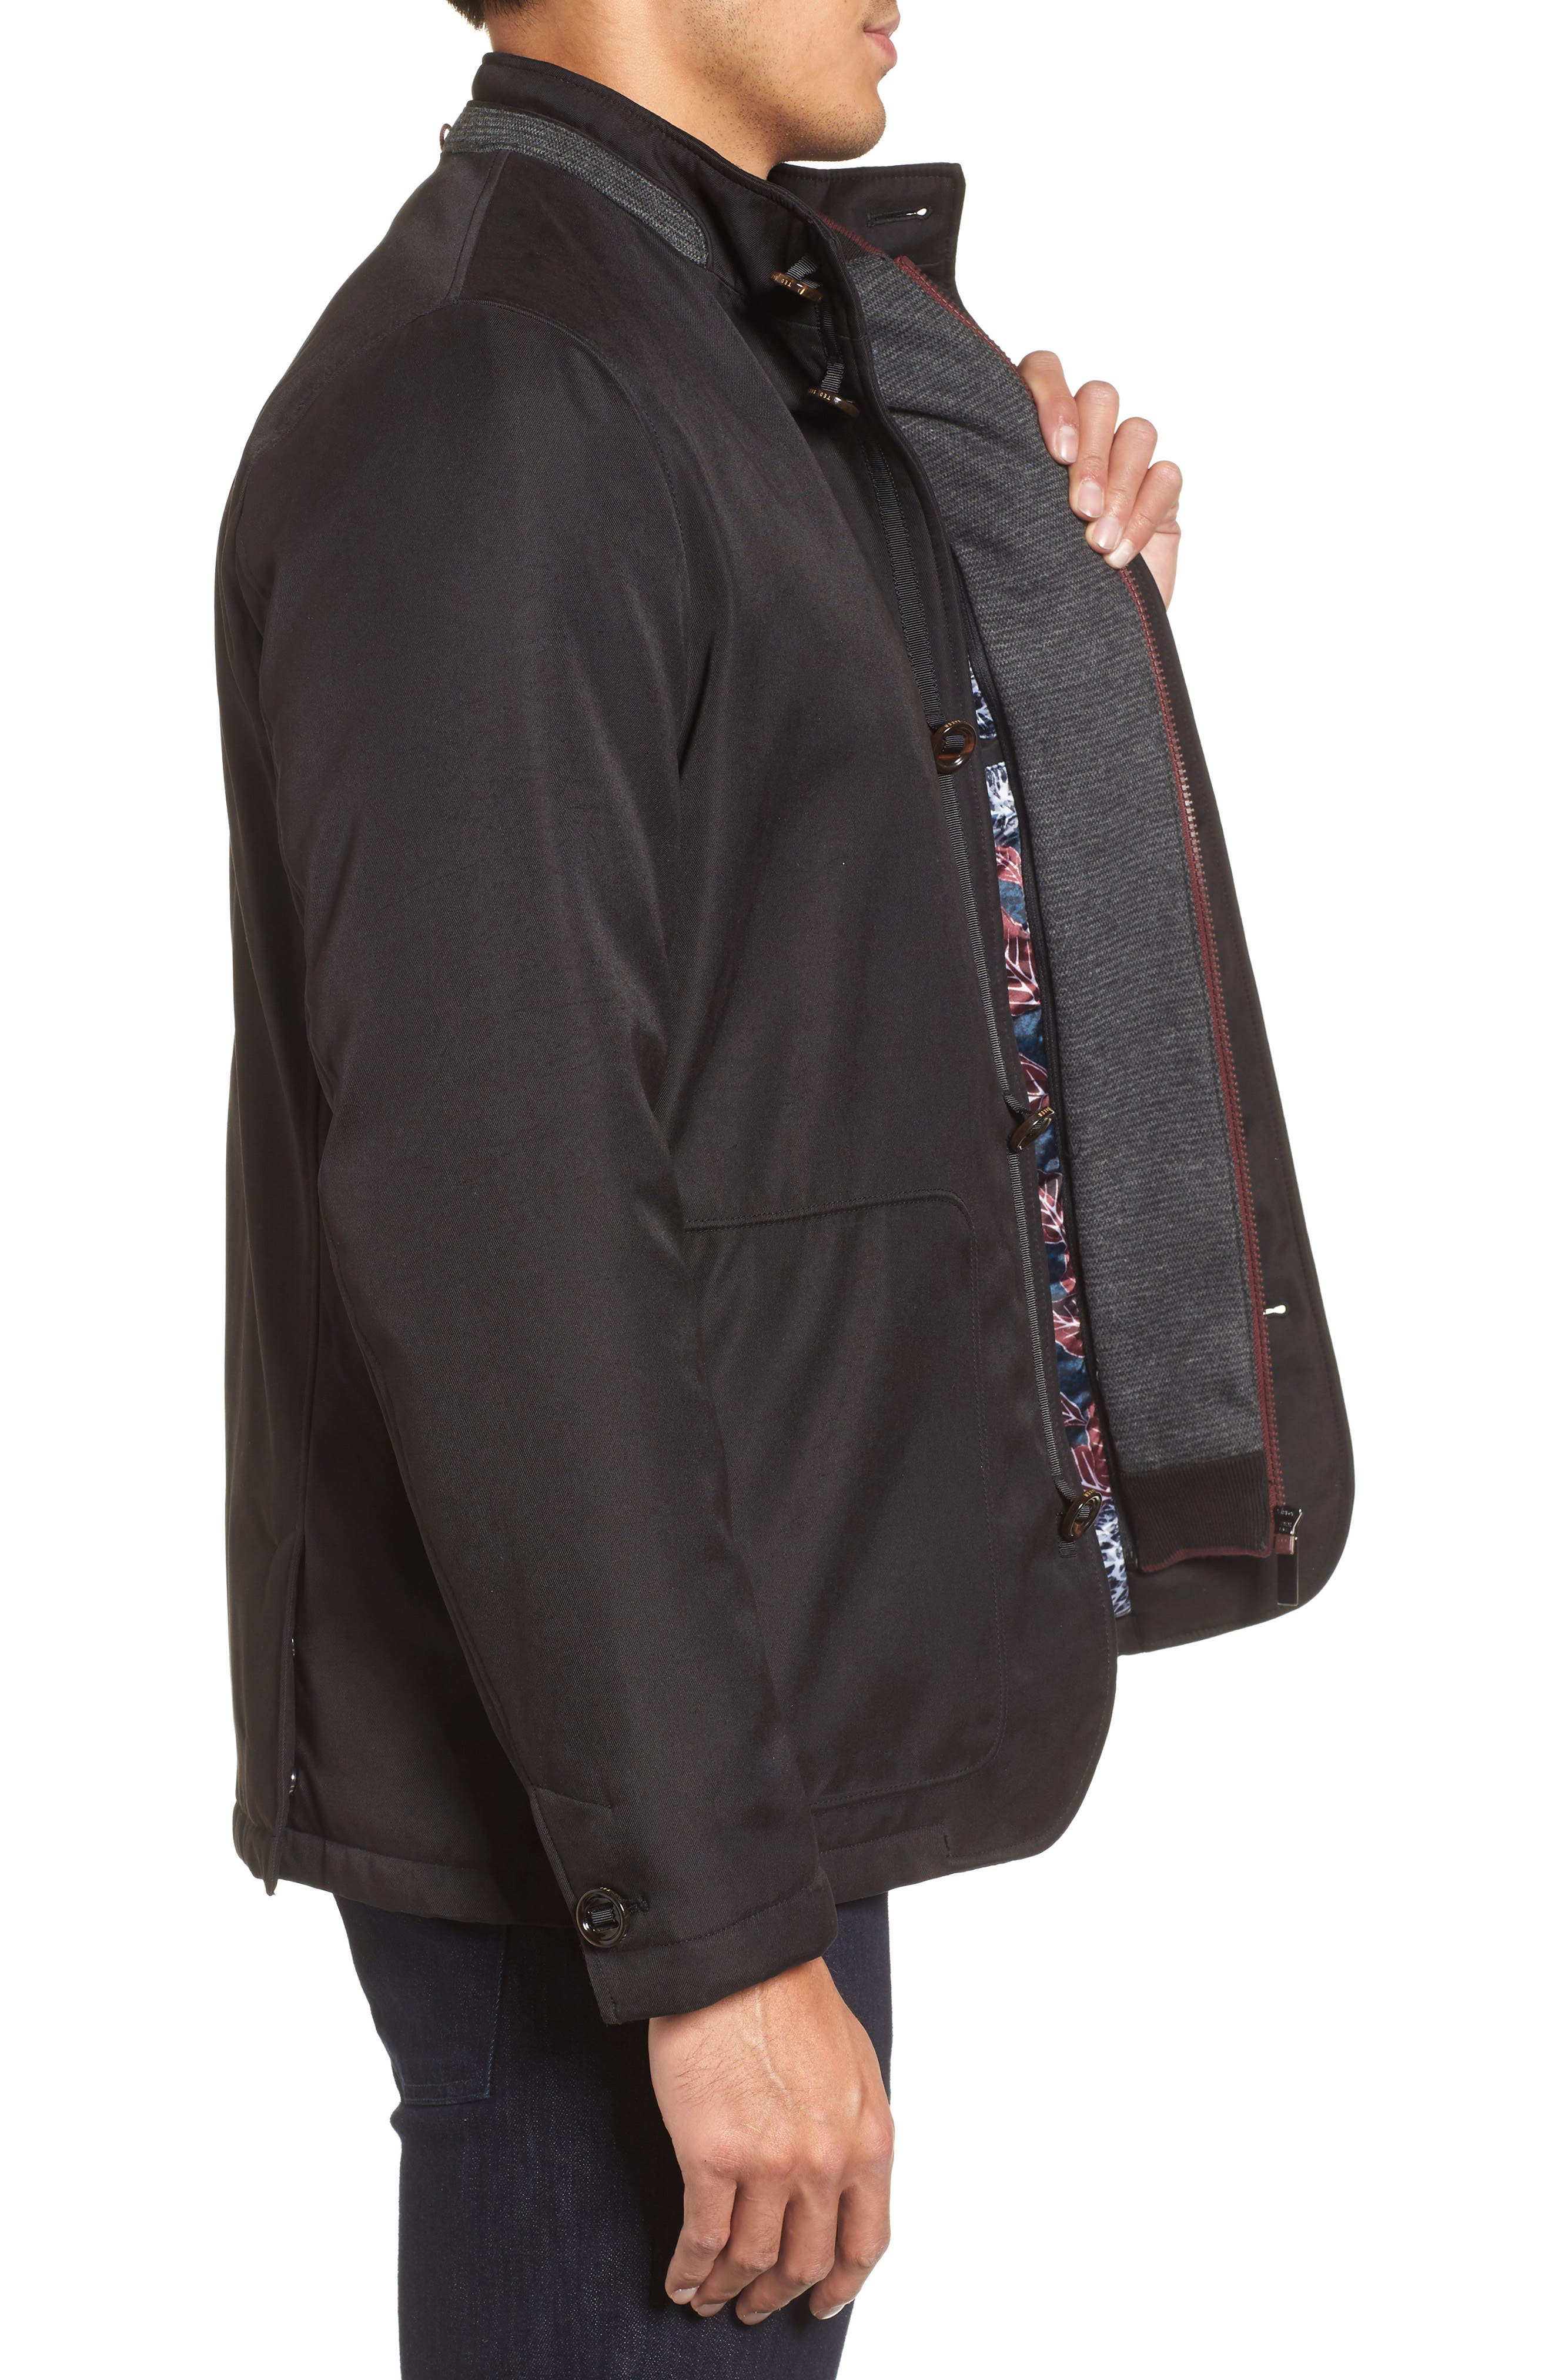 Humfre Knit Bib Inset Jacket,                             Alternate thumbnail 3, color,                             Black